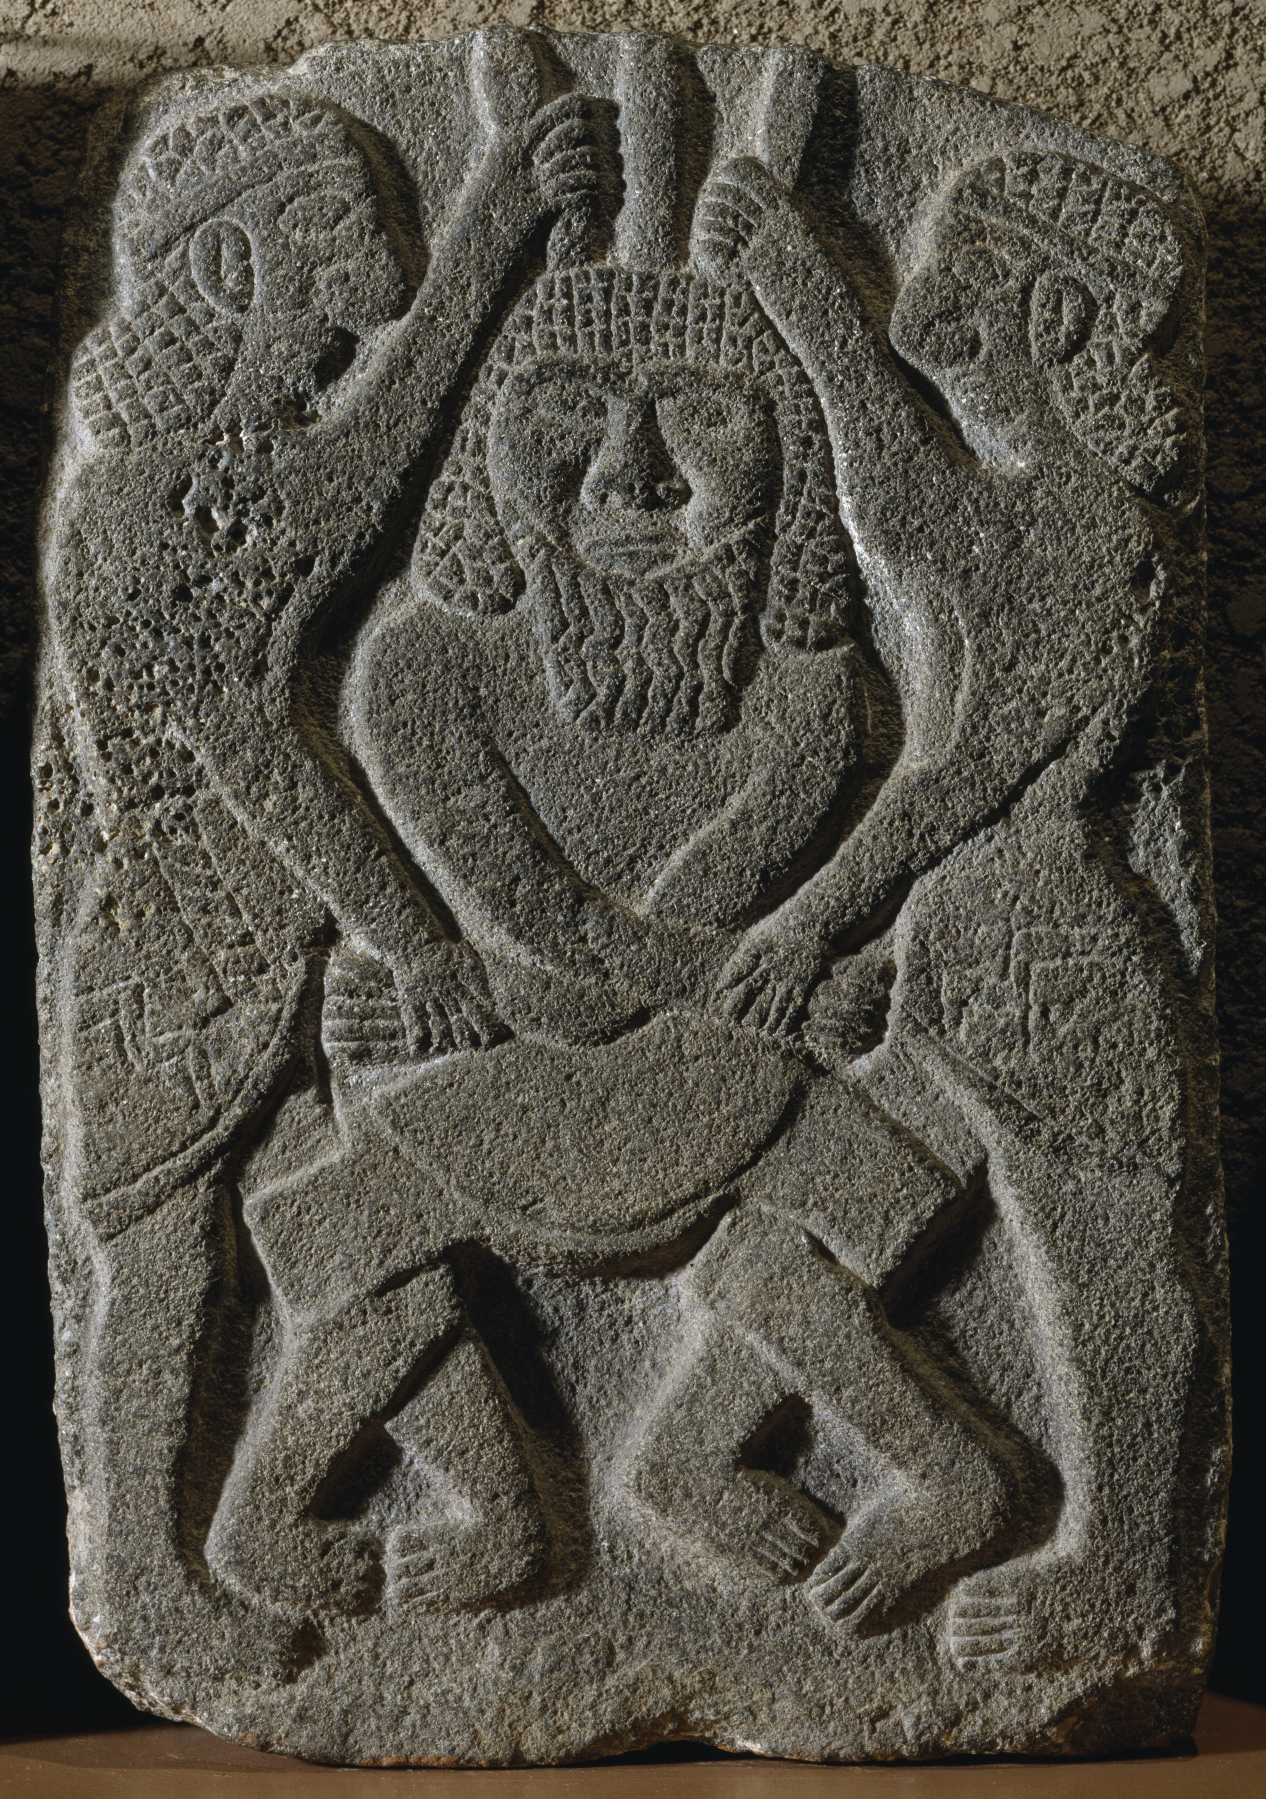 Humbaba A Monstrous Foe For Gilgamesh Or A Misunderstood Guardian